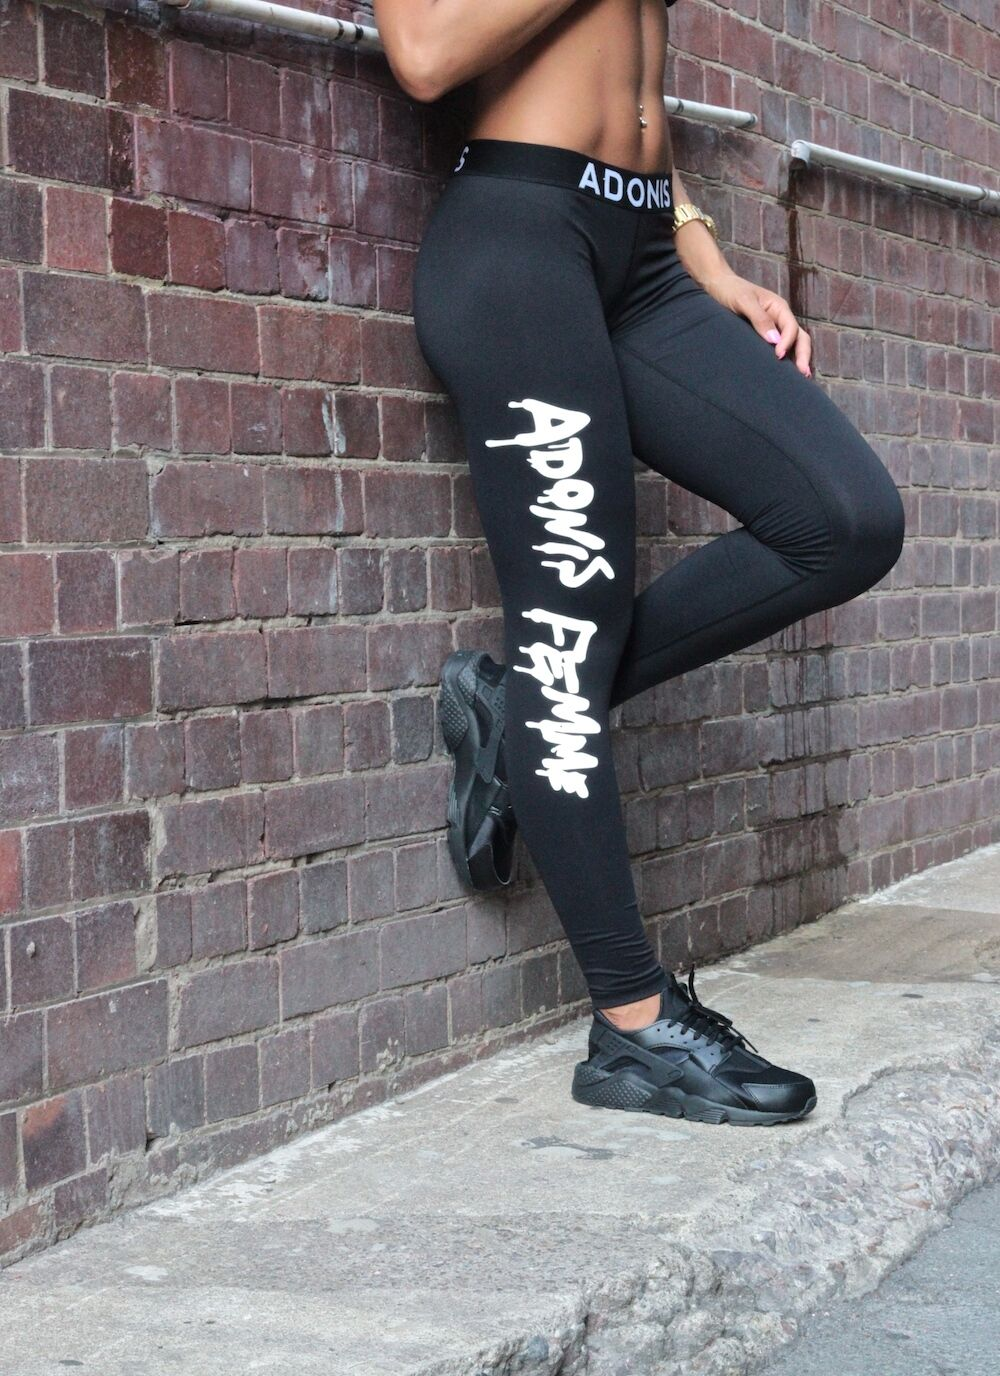 ON SALE   GYM  LEGGINGS, YOGA SPORT ATHLETIC FITNESS WORKOUT DRIPPING  first-class quality